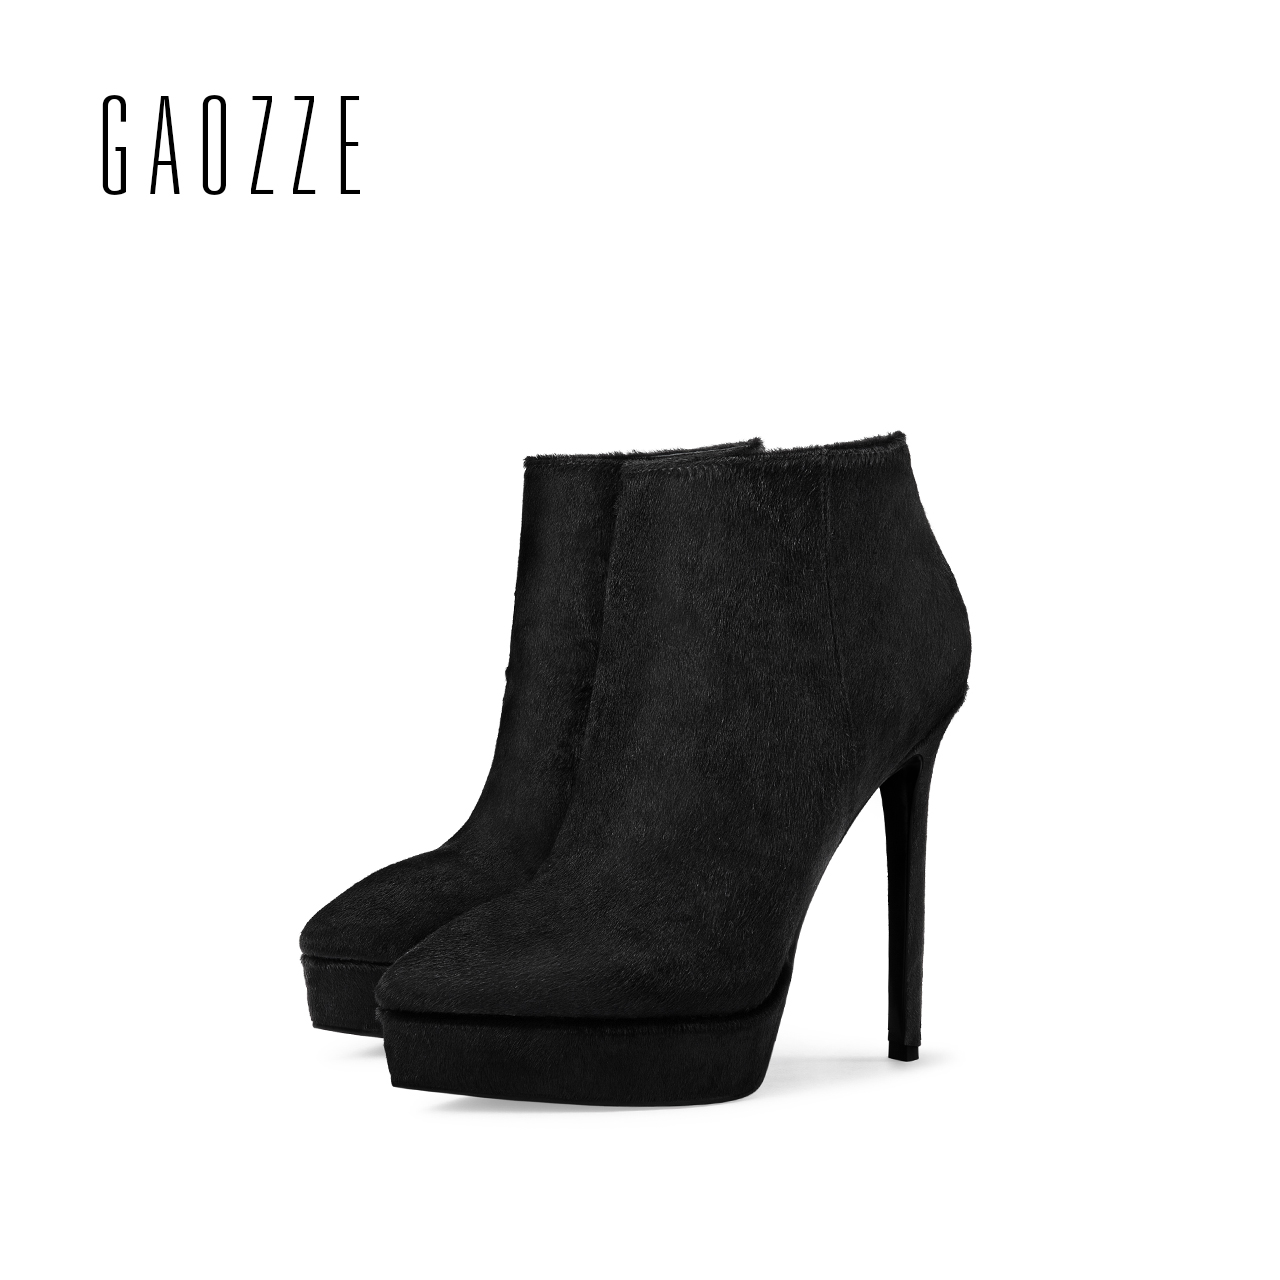 GAOZZE high heel ankle boots for women 2017 autumn new black leather ankle boots side zipper fashion pointed platform ankle boot gaozze autumn ankle boots for women 2017 new sexy thin high heeled boots women side zipper fashion pointed toe shoes red boots